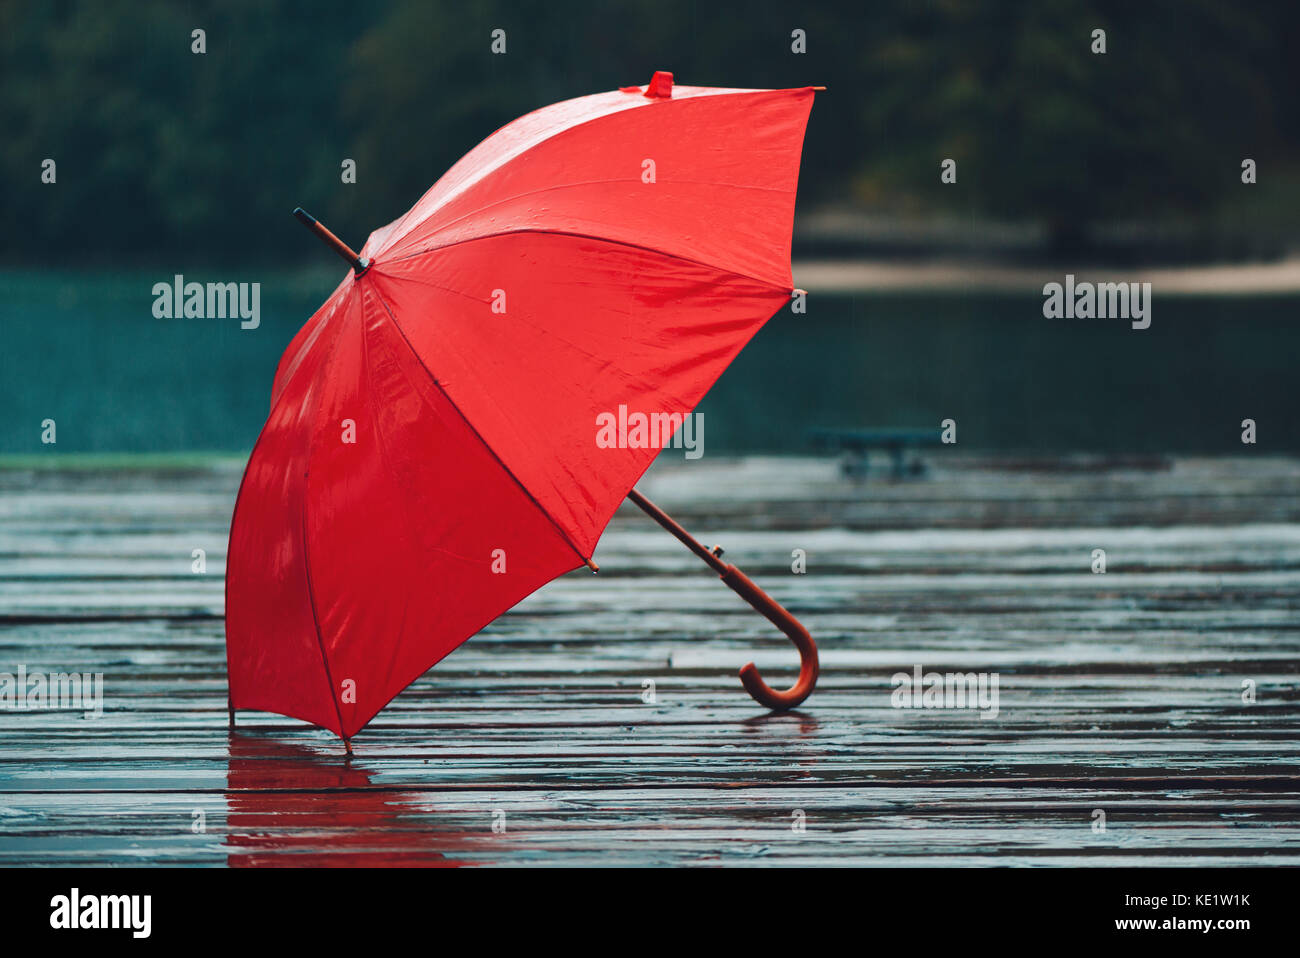 Red umbrella on rain, personal accessory forgotten on old wooden pier - Stock Image